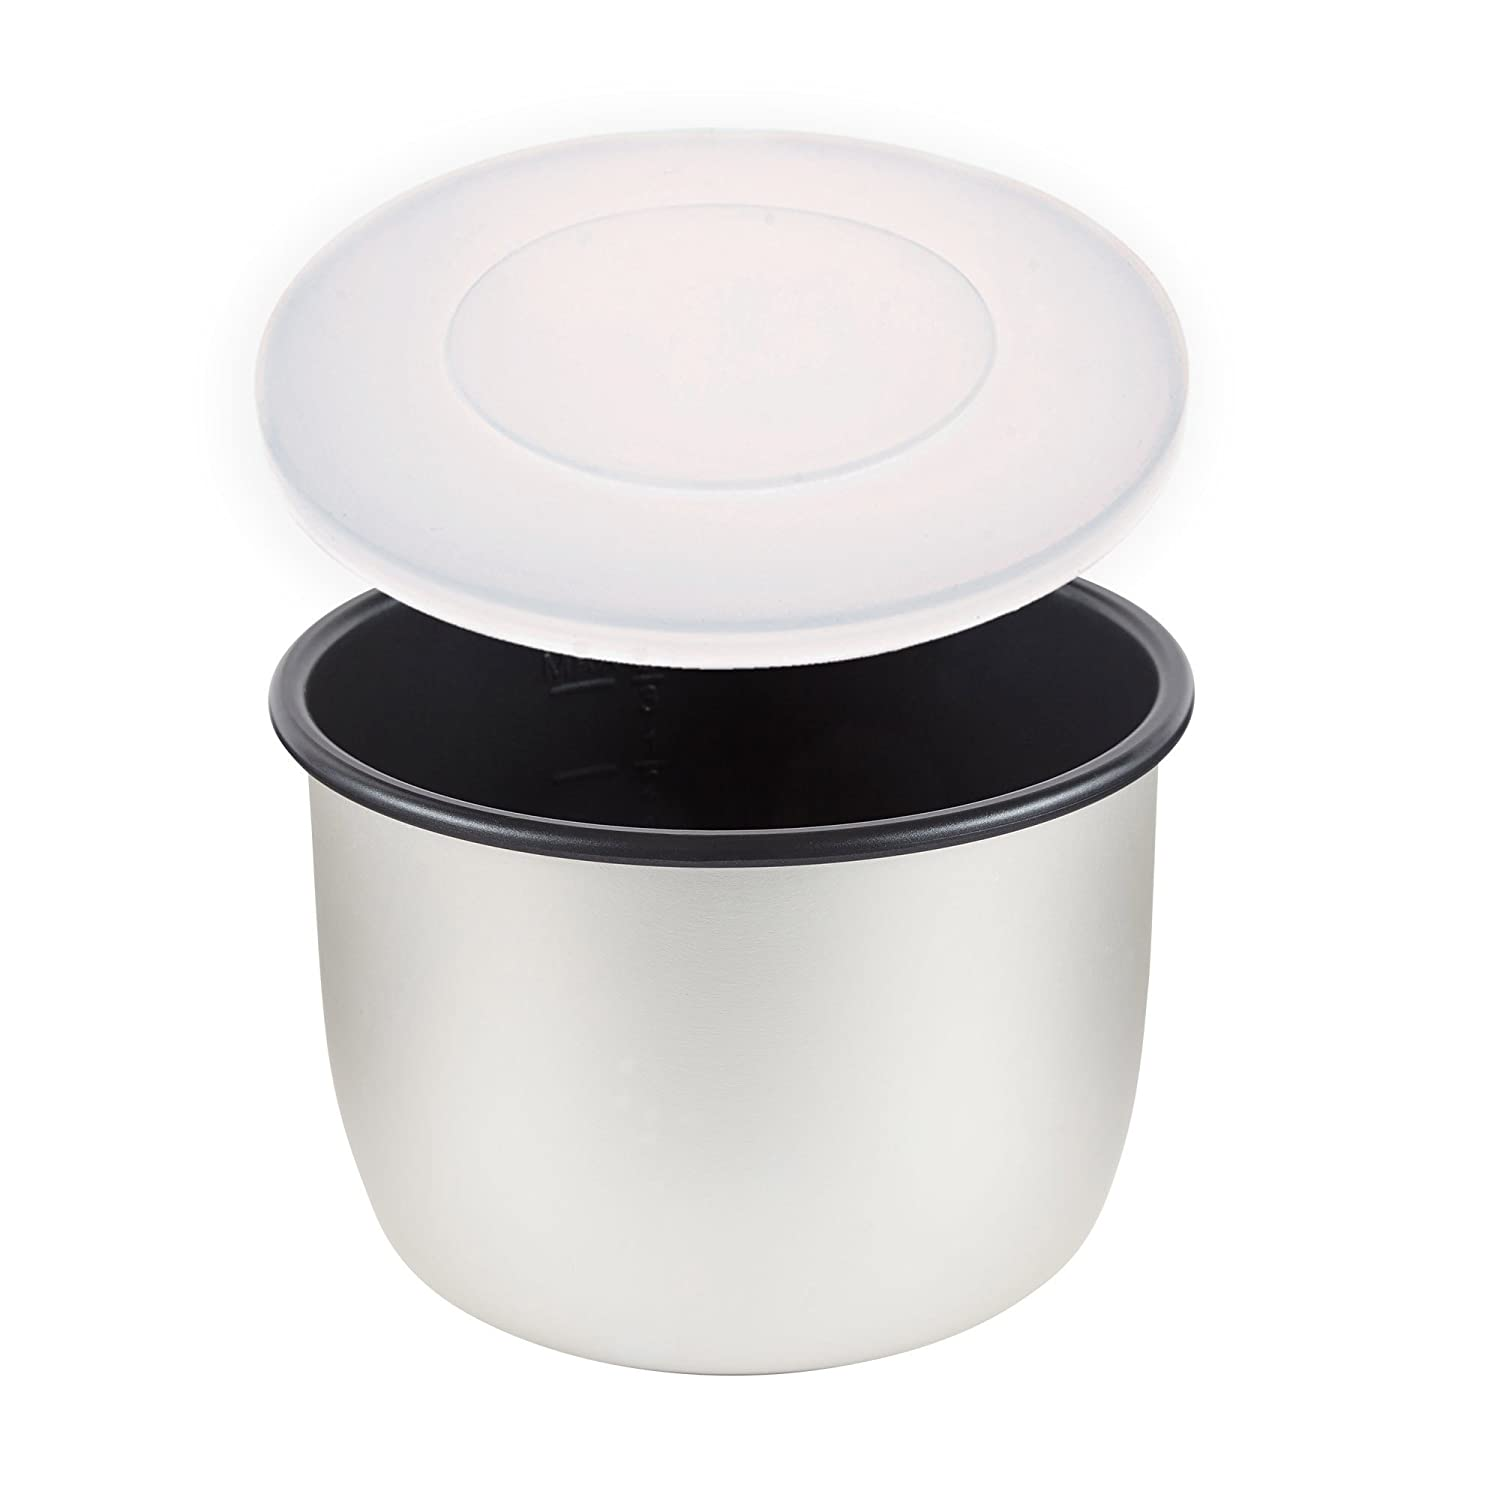 Silicone Lid/Cover - Compatible with Crock-Pot (TM) 6 Qt 8-in-1 Multi-Use Express Crock Slow Cooker/Pressure Cooker/Multi-Cooker (SCCPPC600-V1) - BPA-Free - By Impresa Products